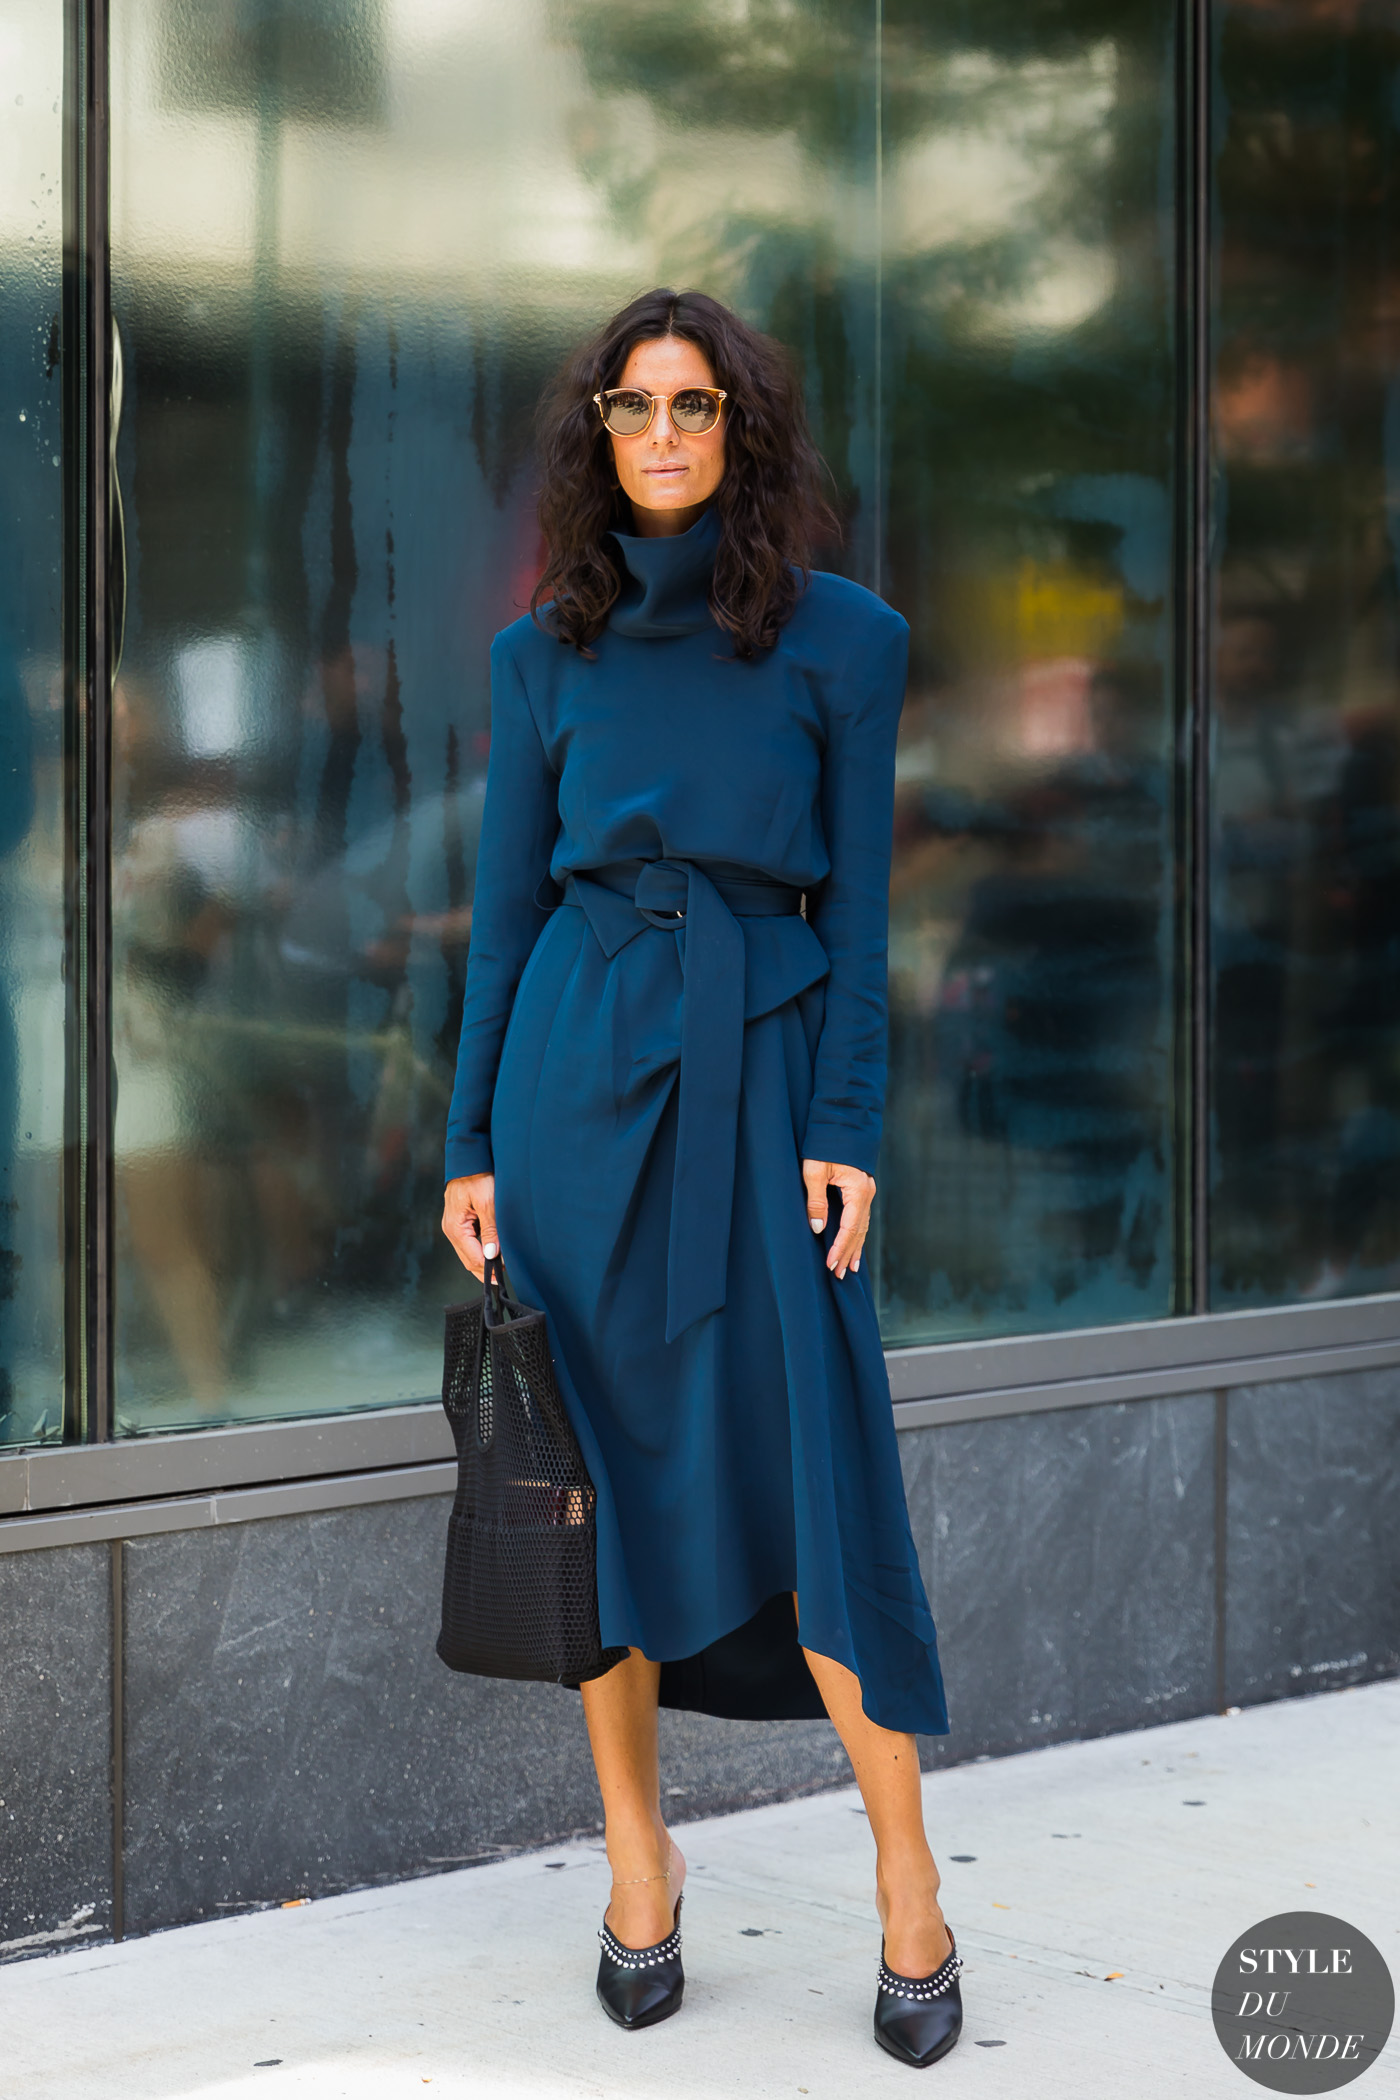 Hedvig Sagfjord Opshaug by STYLEDUMONDE Street Style Fashion Photography_48A8902